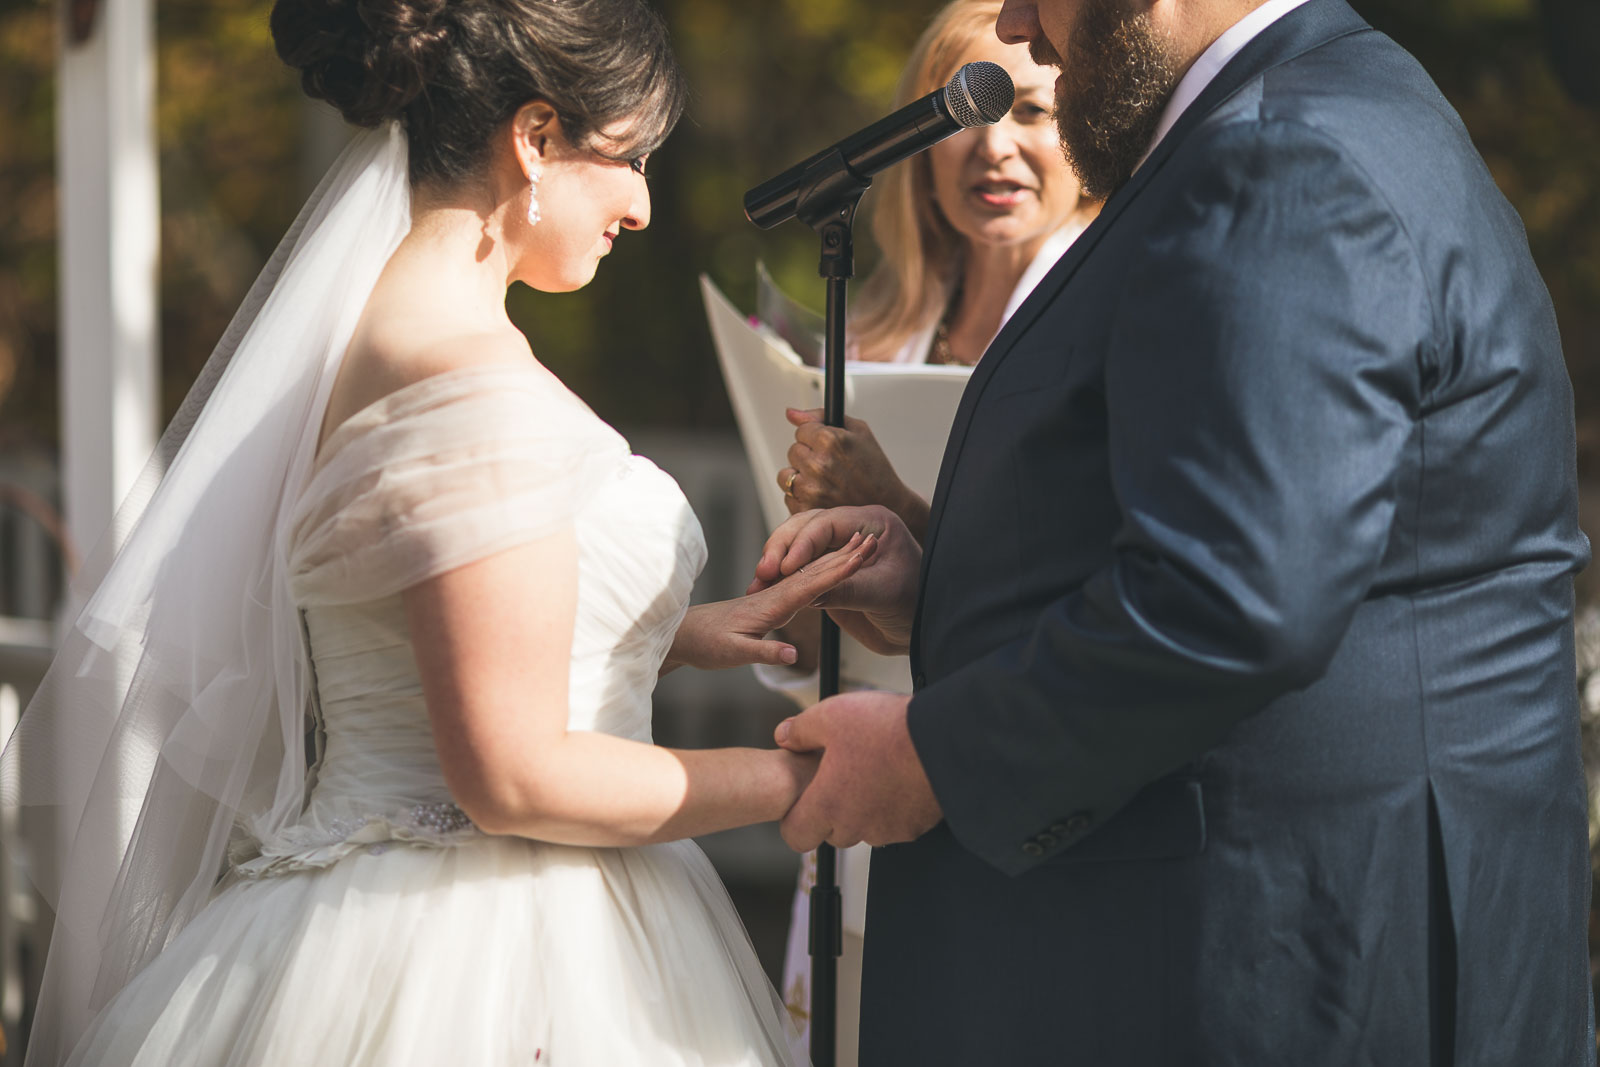 Groom exchanges ring with bride